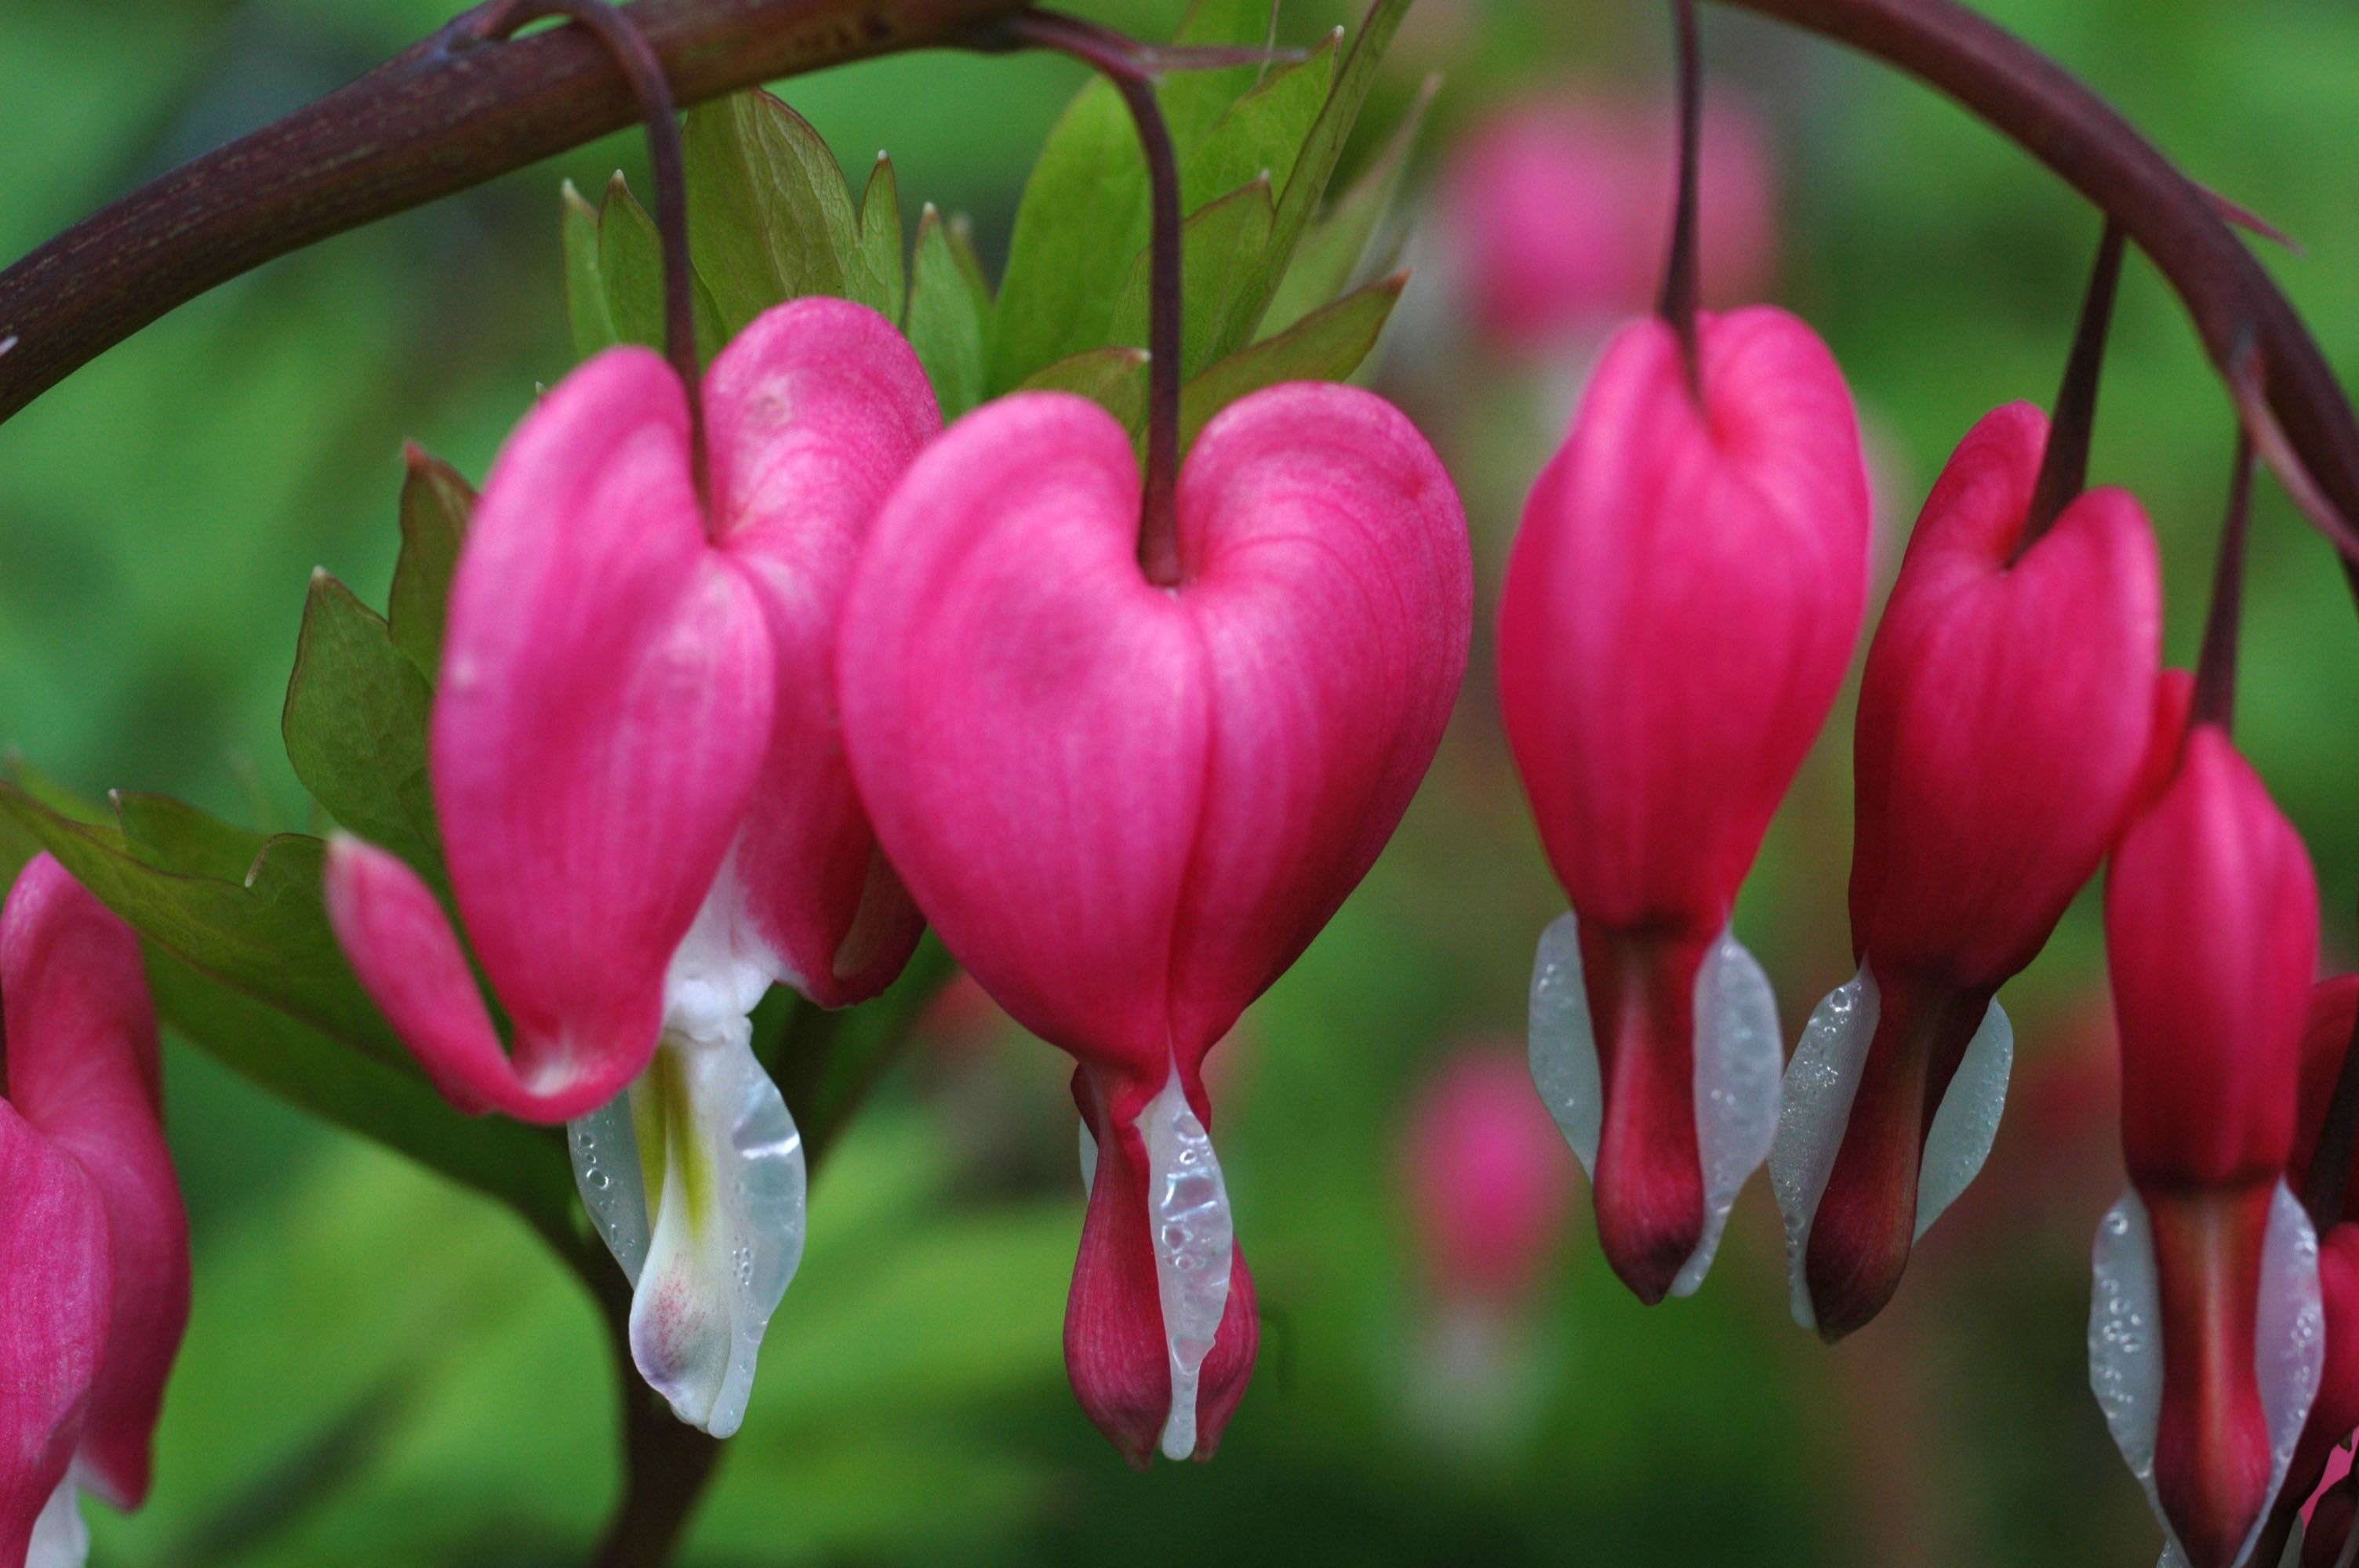 Bleeding Heart Flower Wallpaper Flower Wallpapers Bleeding Heart Flower Wonderful Flowers Bleeding Heart